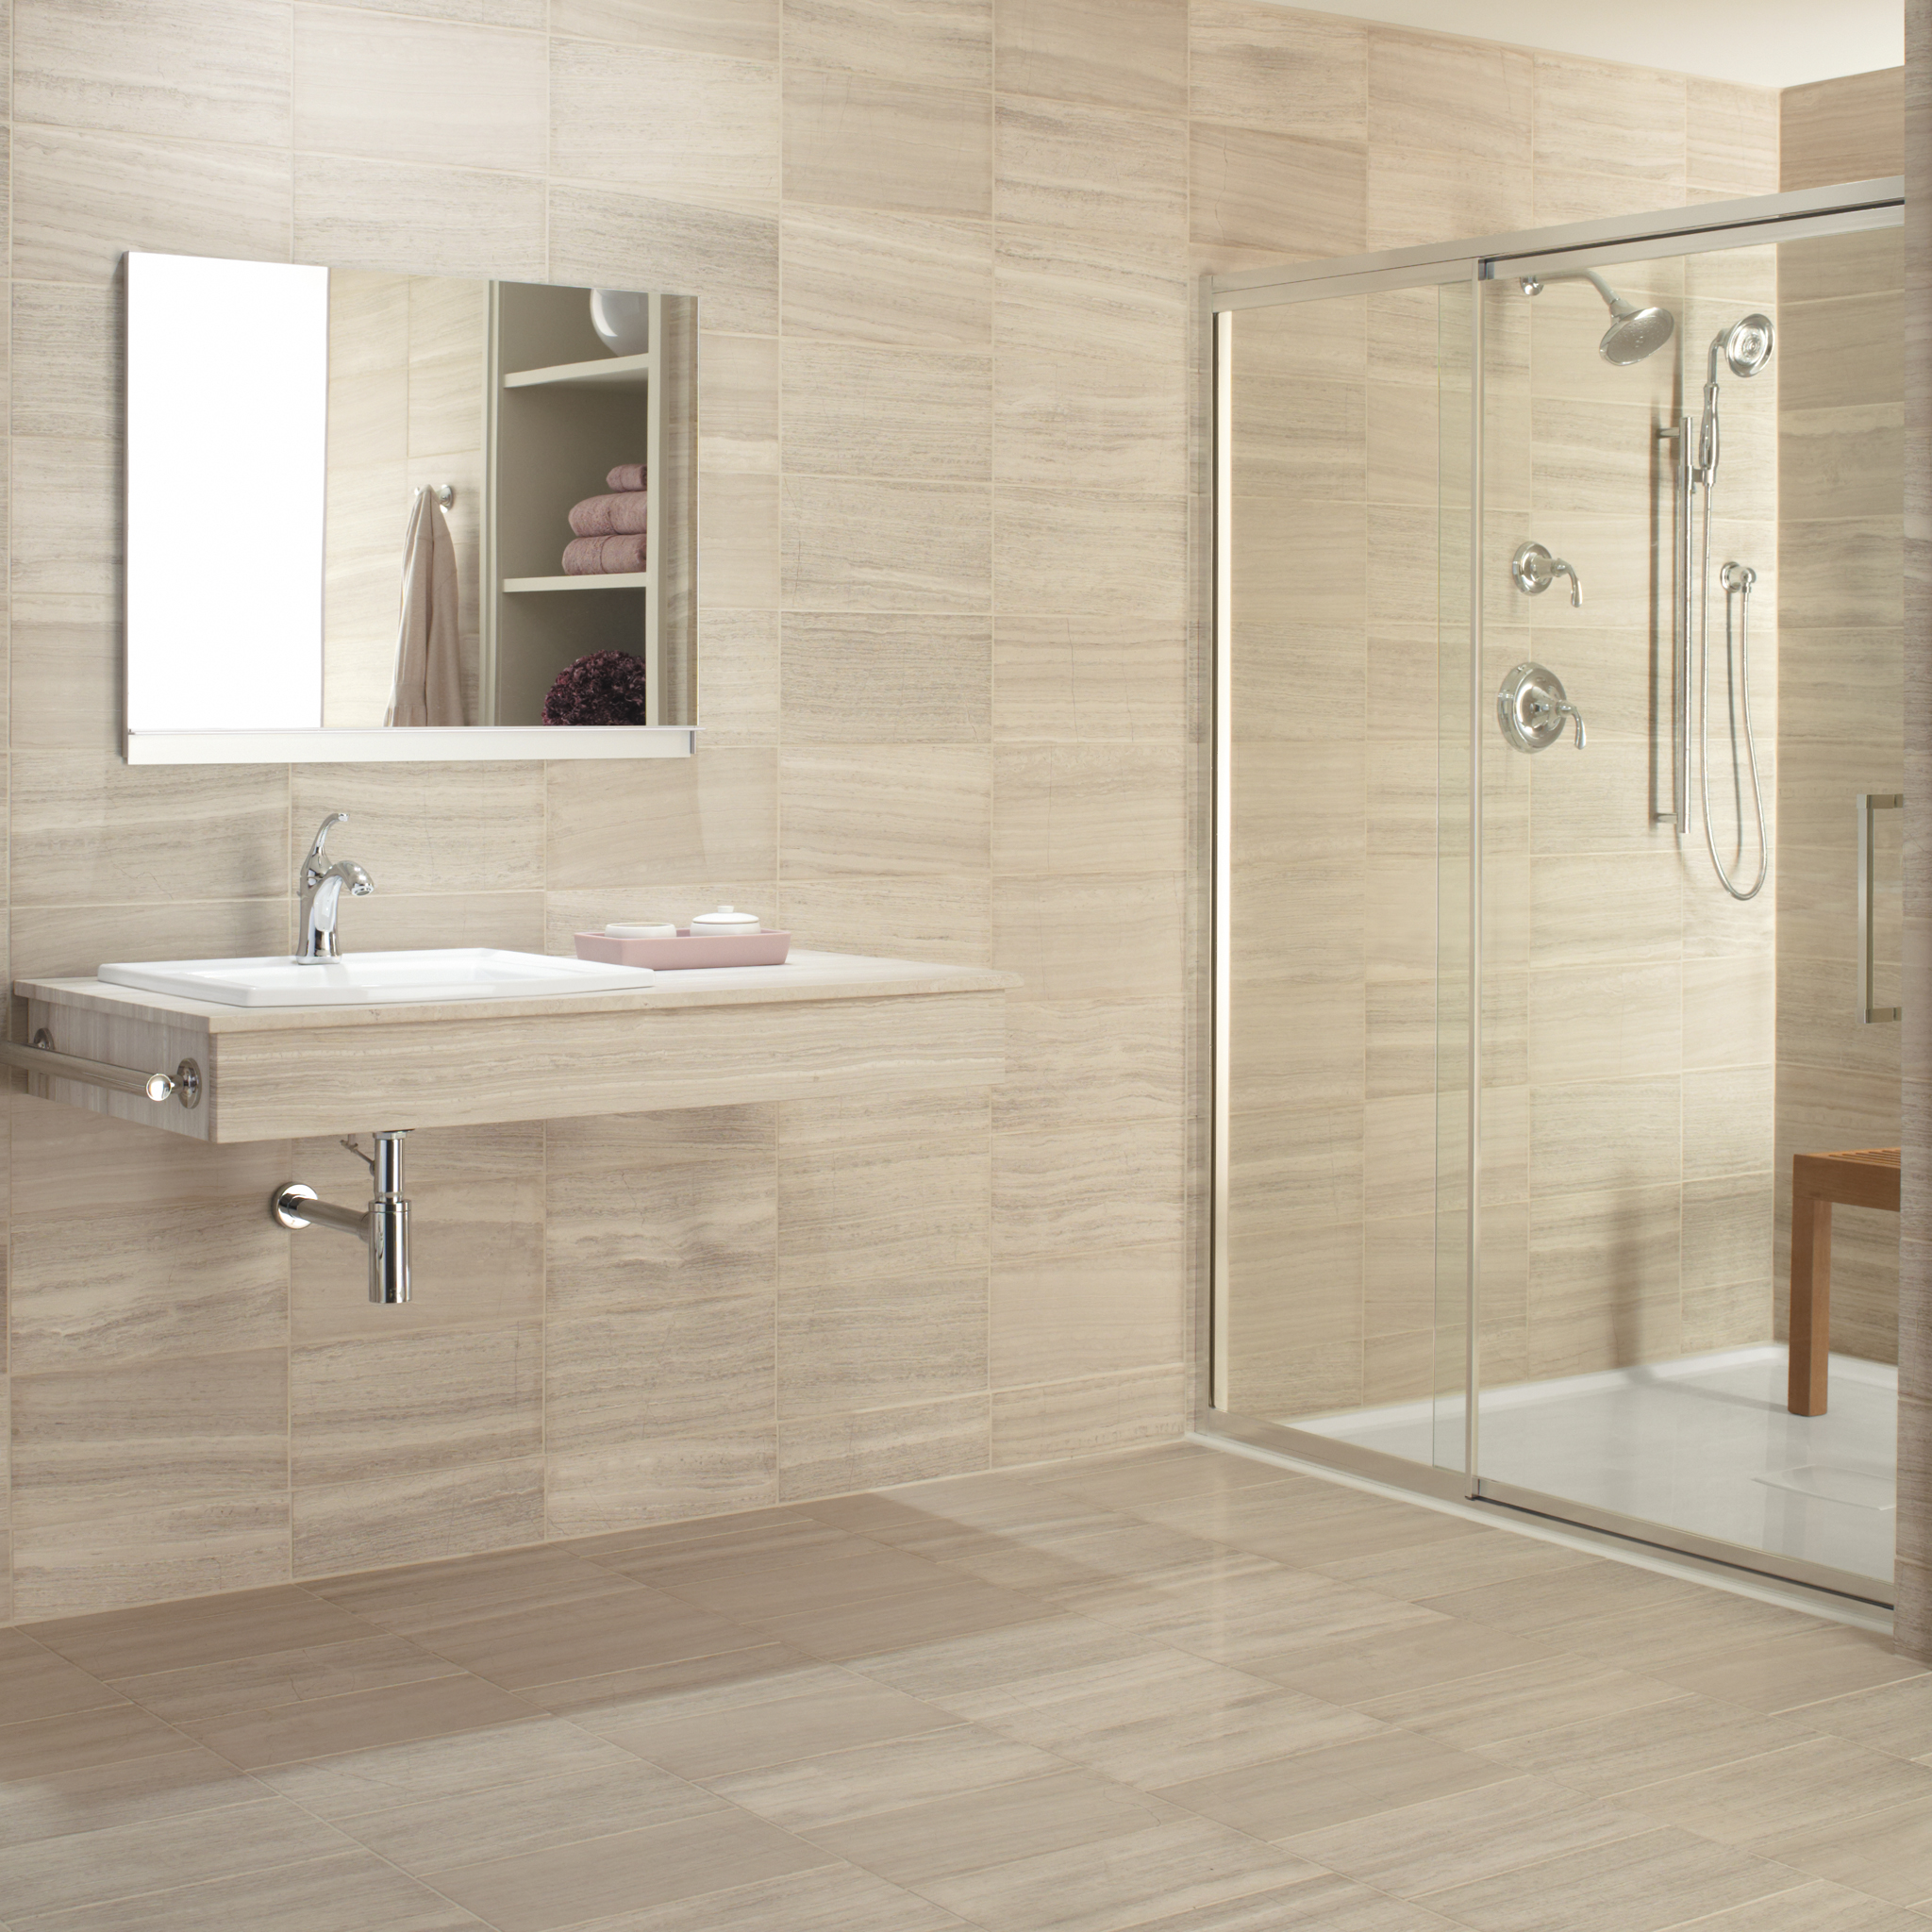 Uplift Robern Wiring Outlets In Bathroom